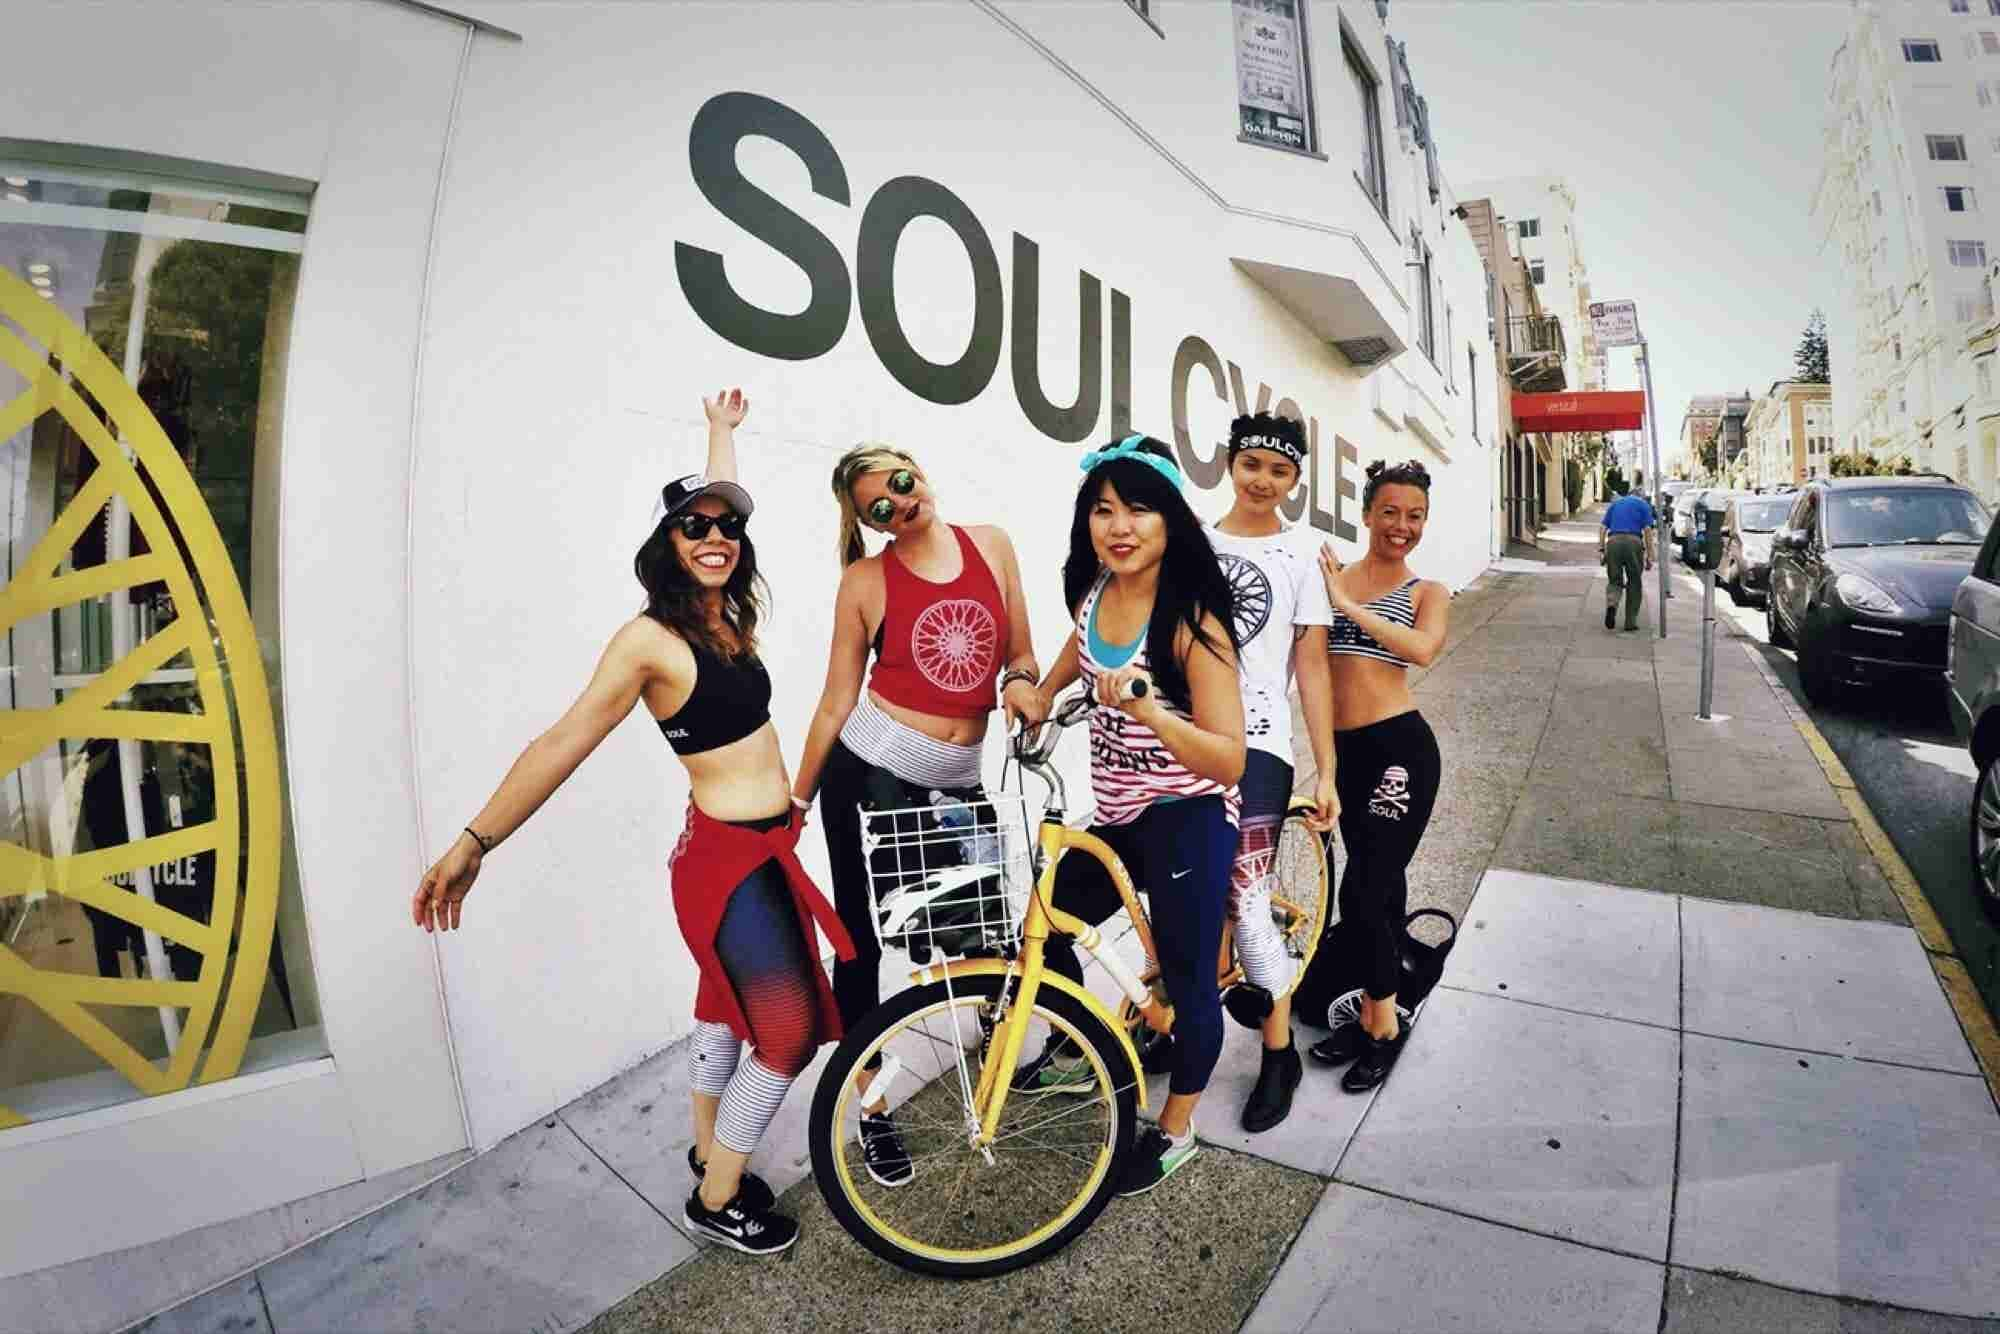 Lawsuit Claims SoulCycle 'Robs Customers' With Its Class-Purchasing Policy